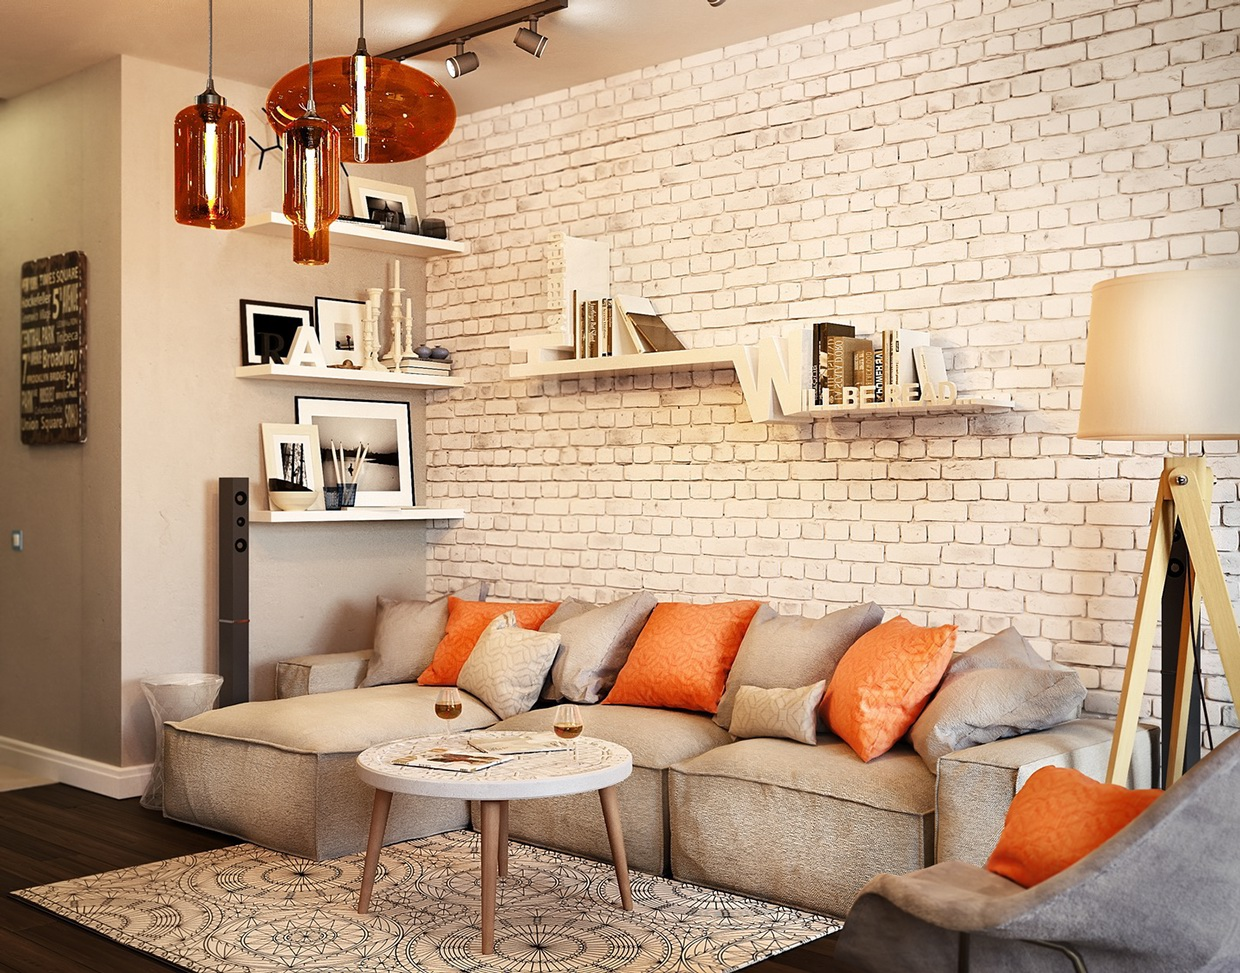 White Brick - Chic studio apartments with artsy accents